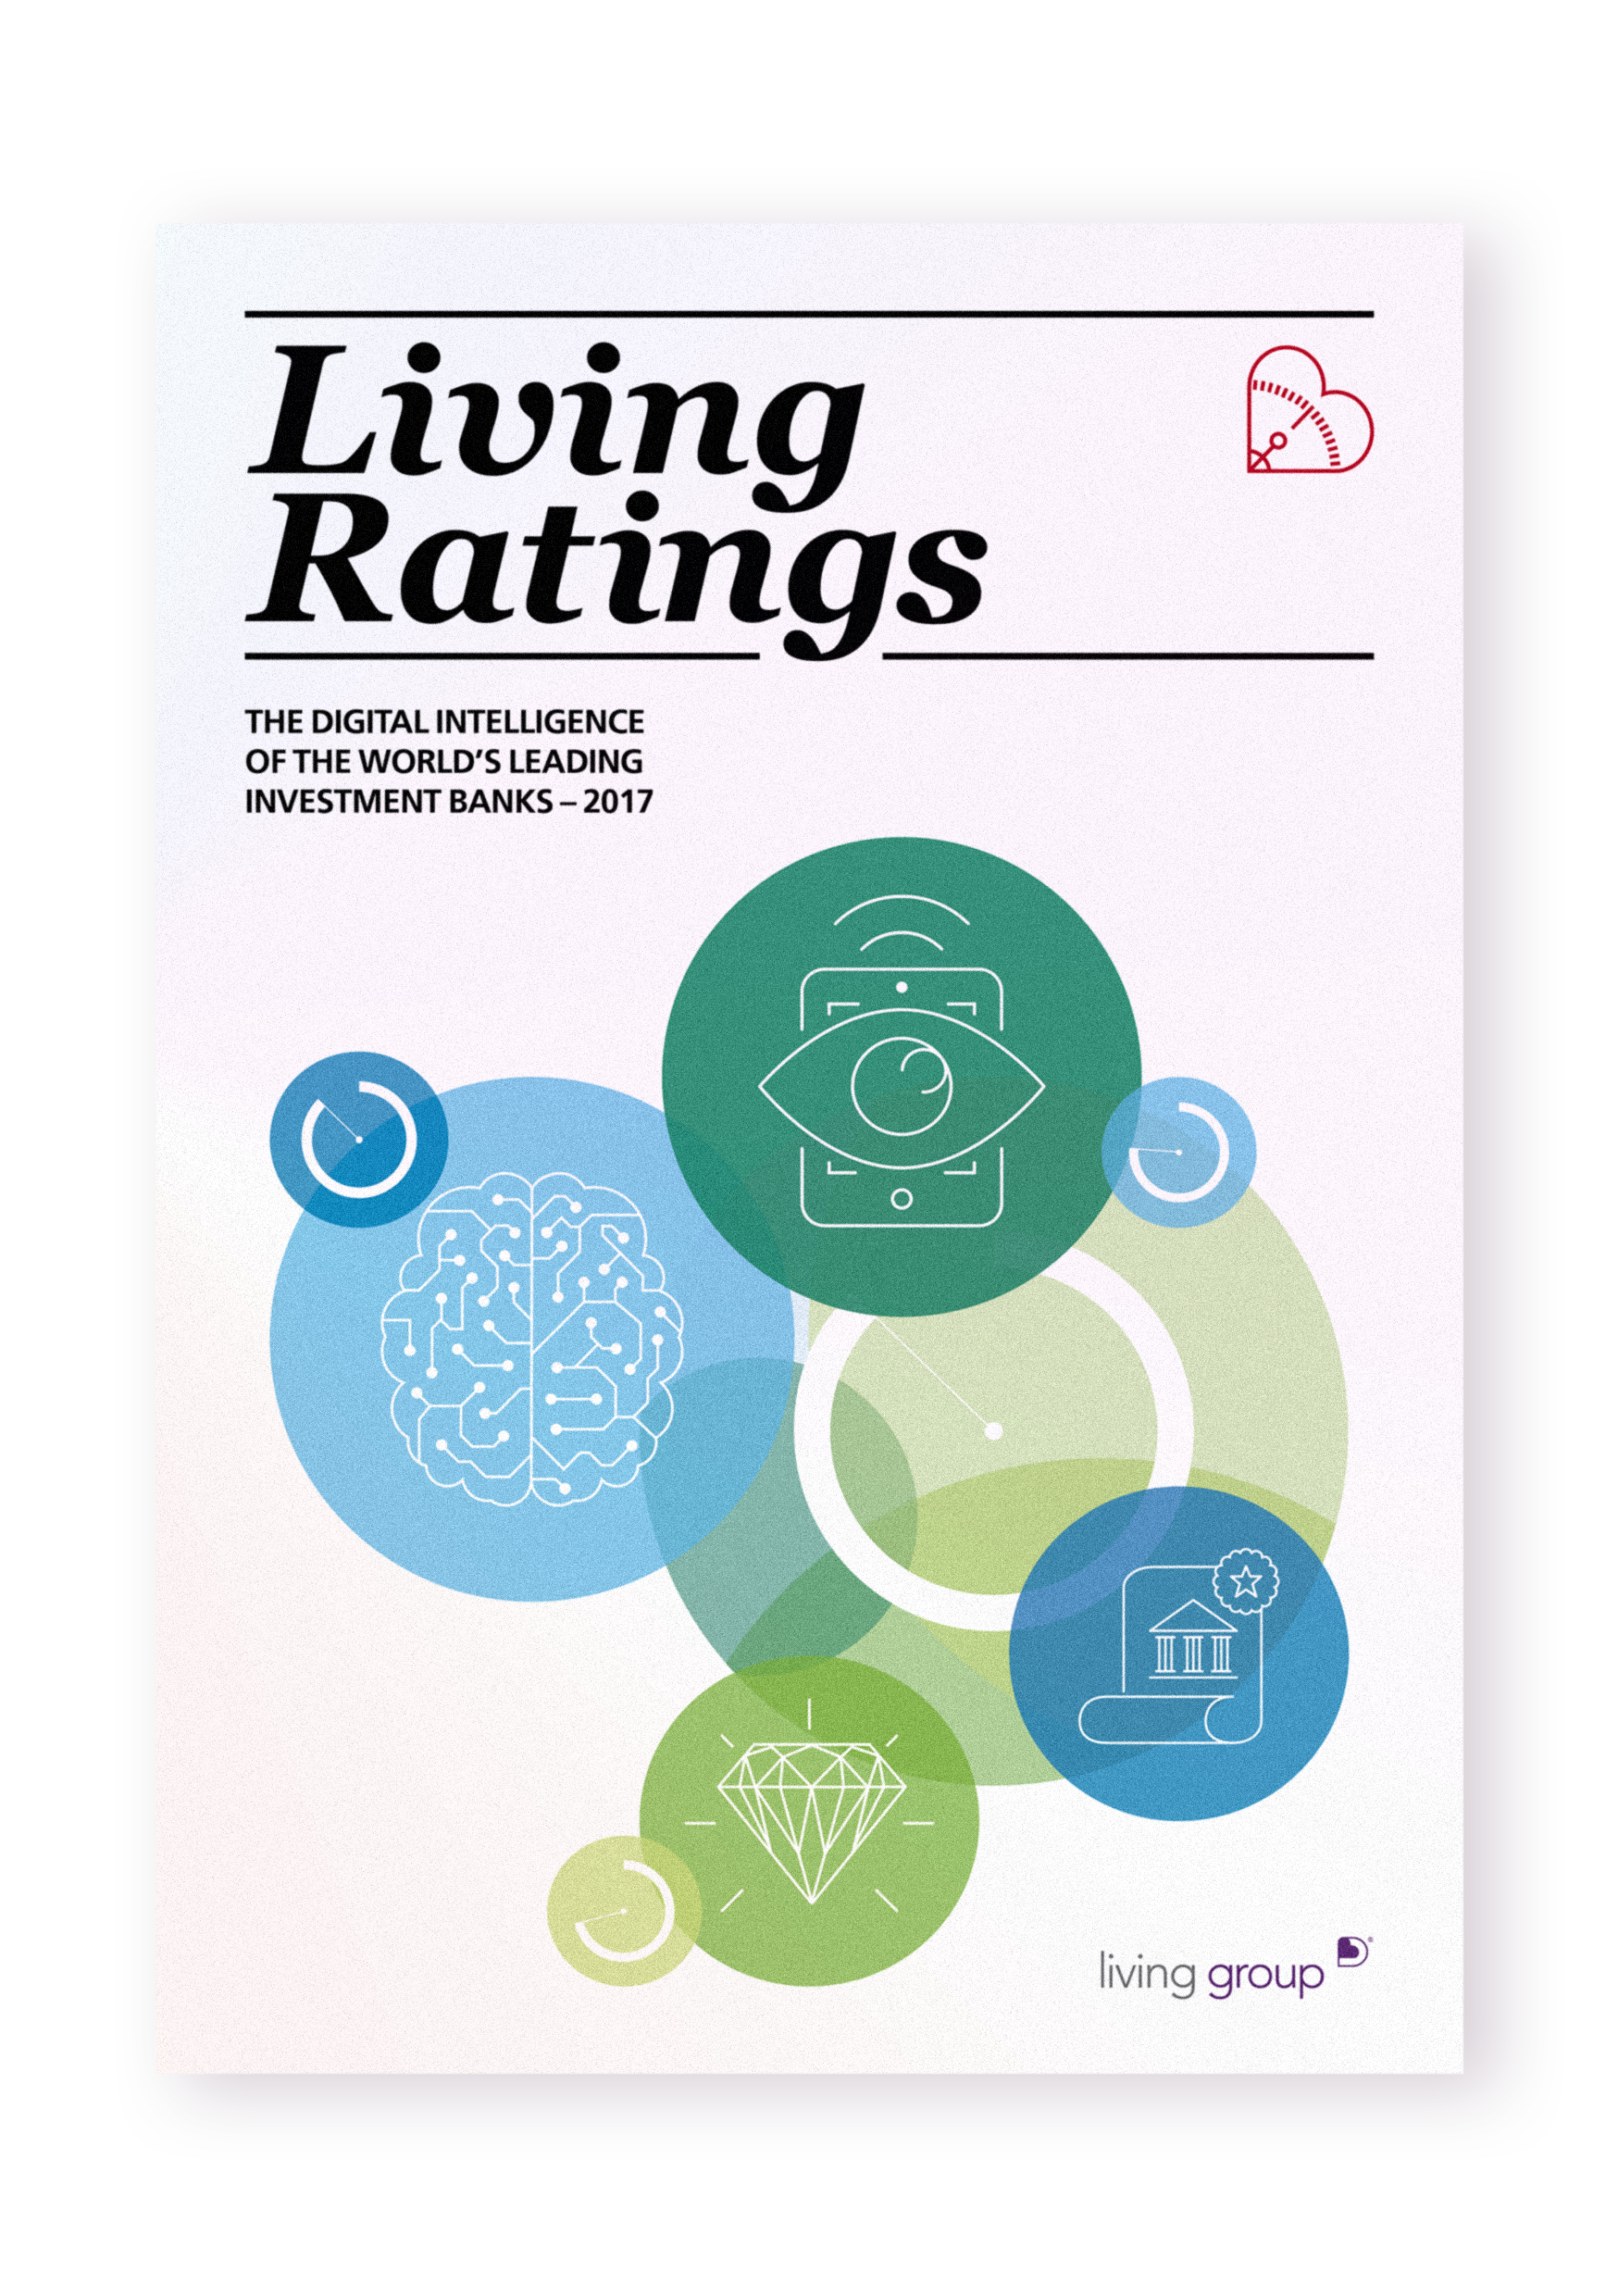 15991_Living_Ratings_Investment Banks_2017_Cover.png (1)